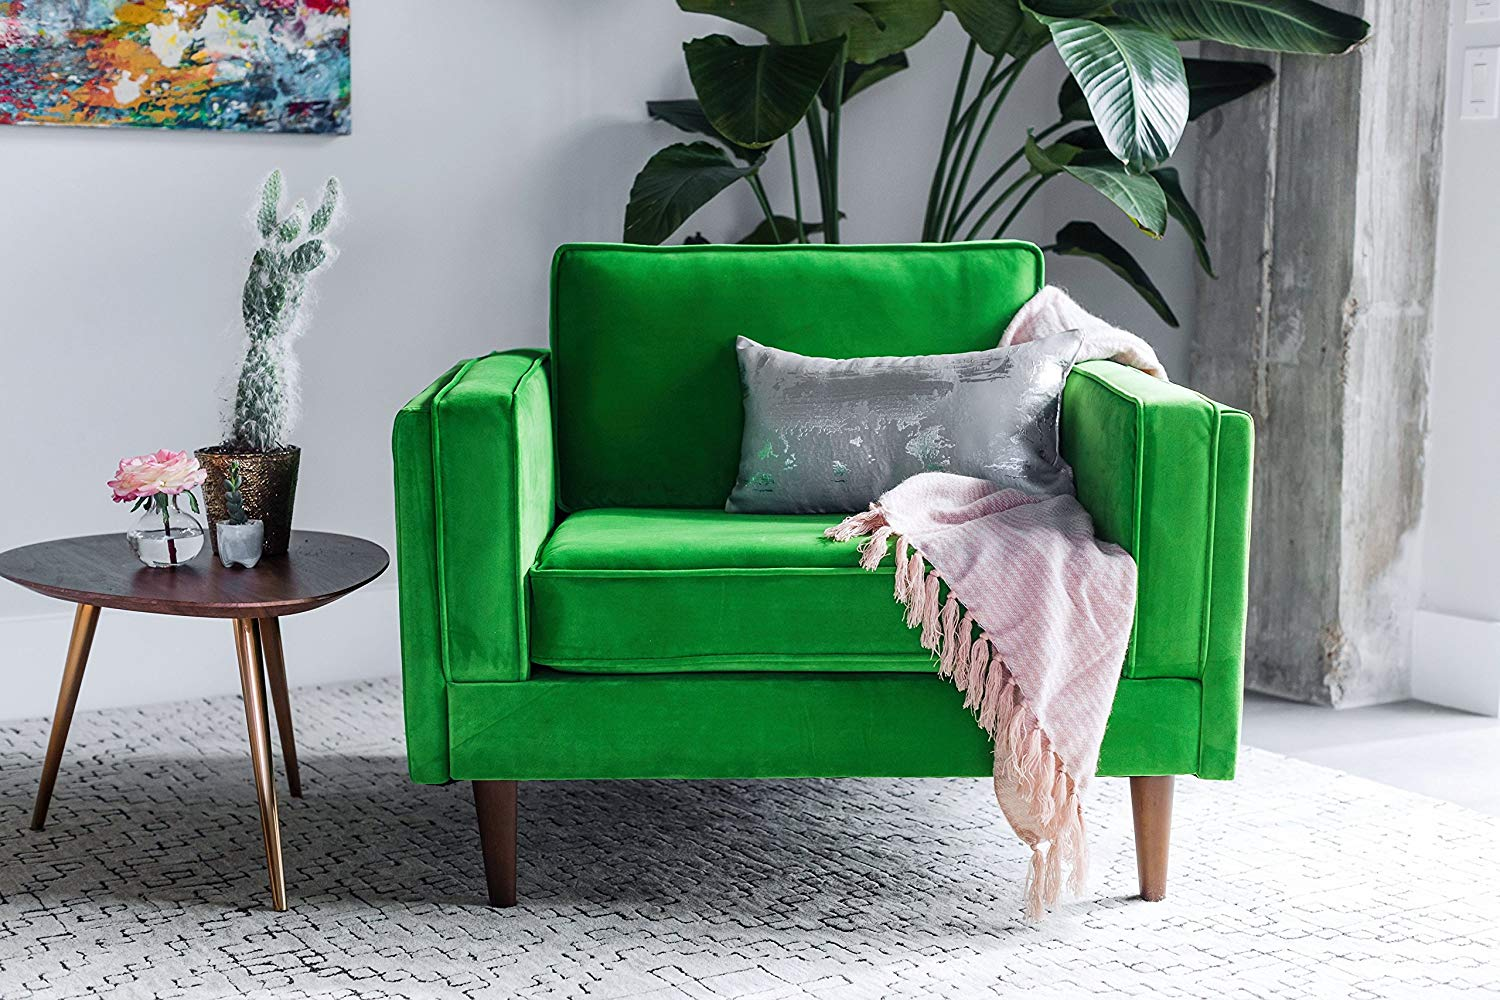 Cheap Green Accent Chair Find Green Accent Chair Deals On